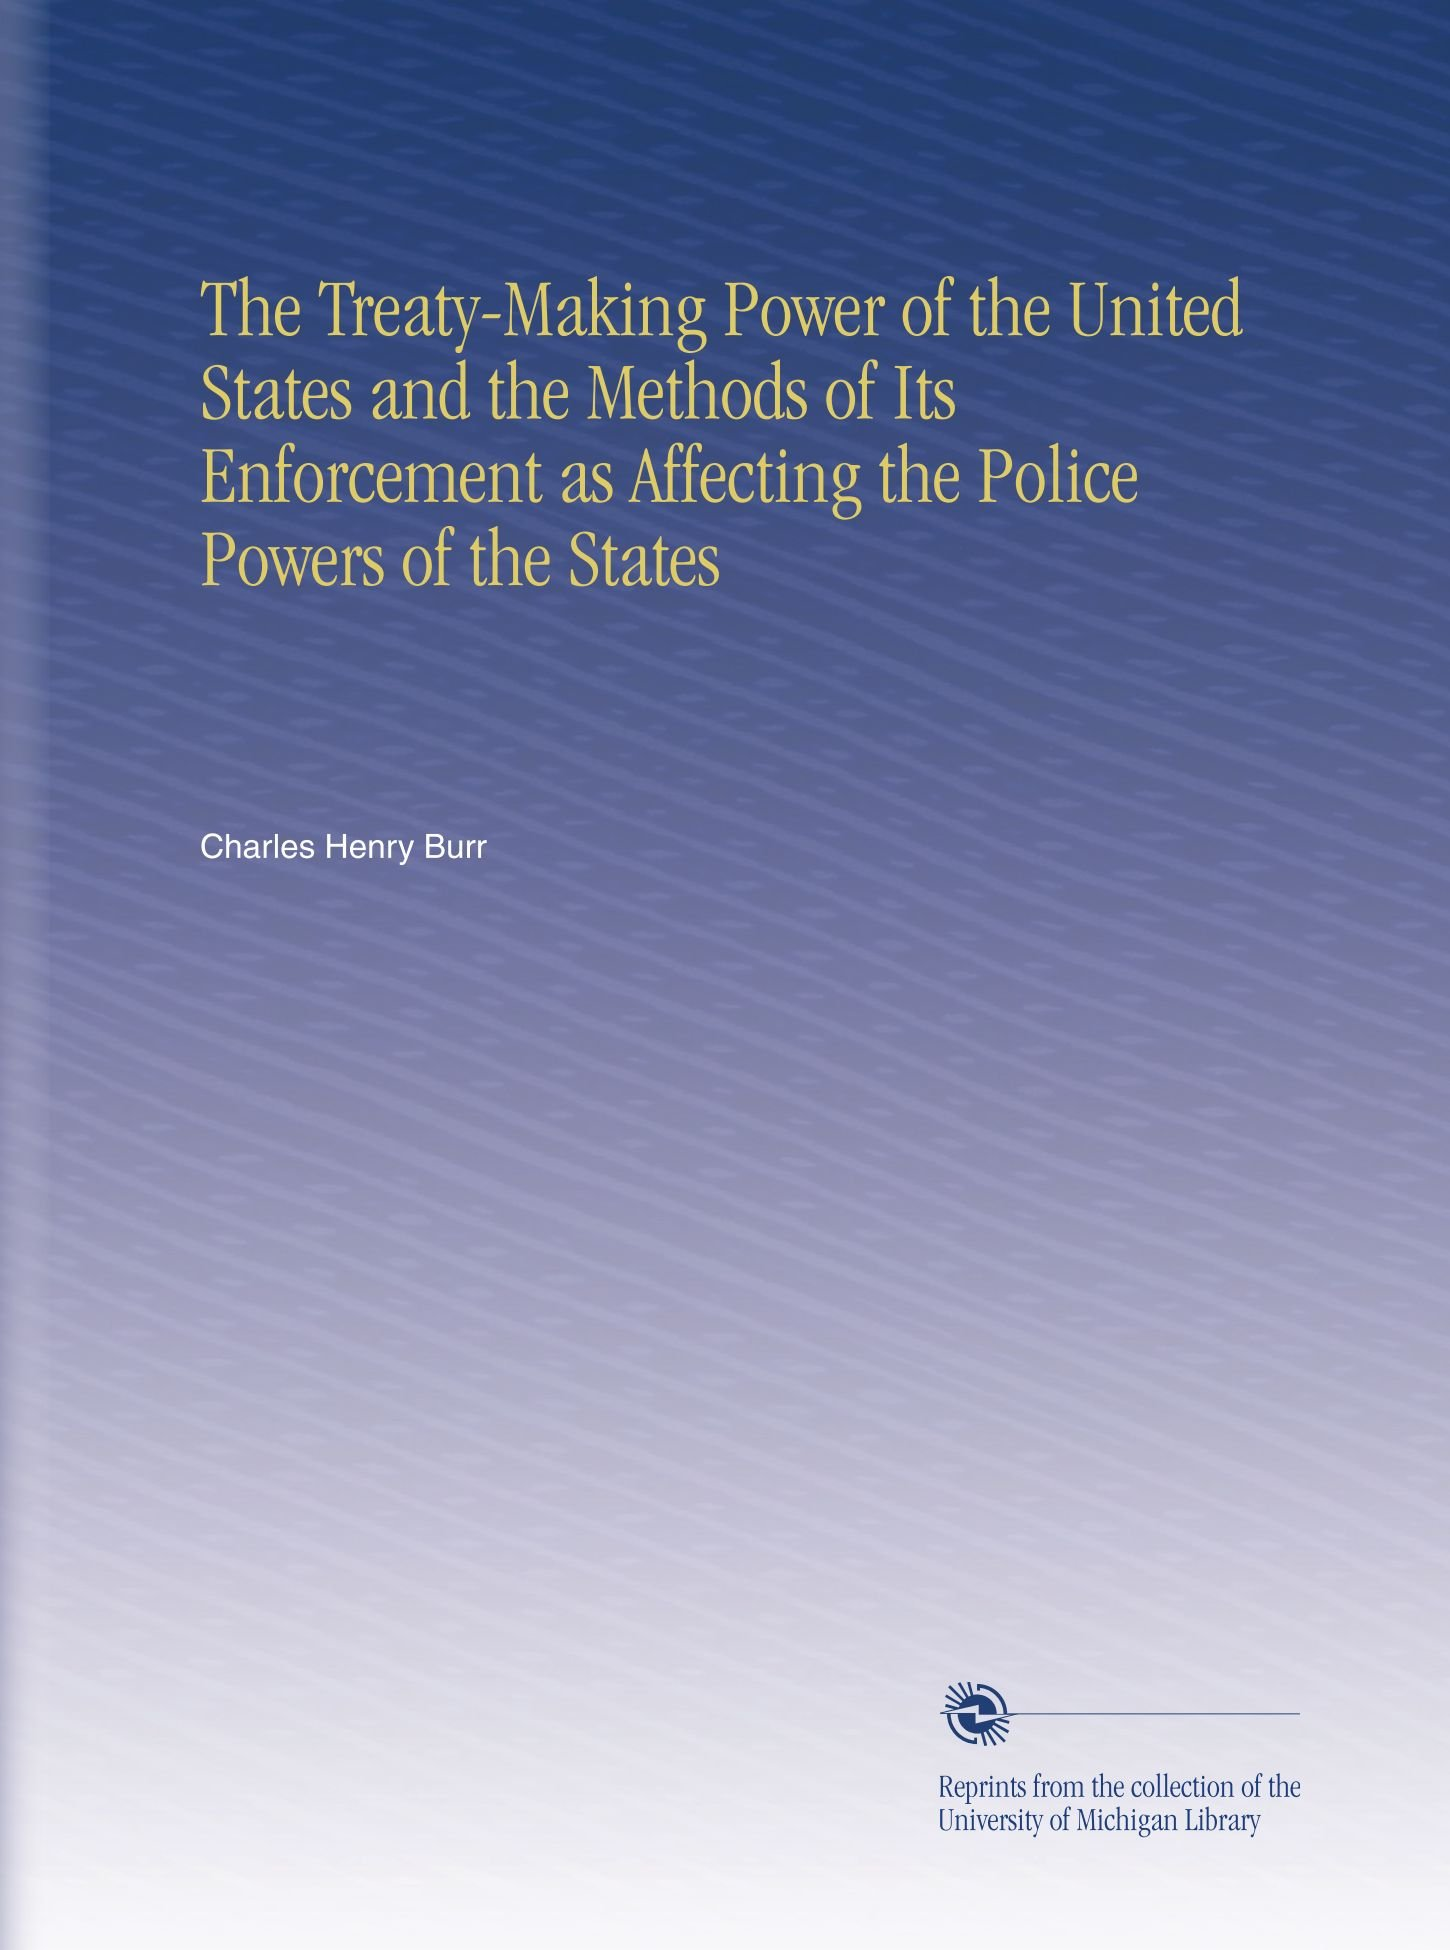 Read Online The Treaty-Making Power of the United States and the Methods of Its Enforcement as Affecting the Police Powers of the States ebook